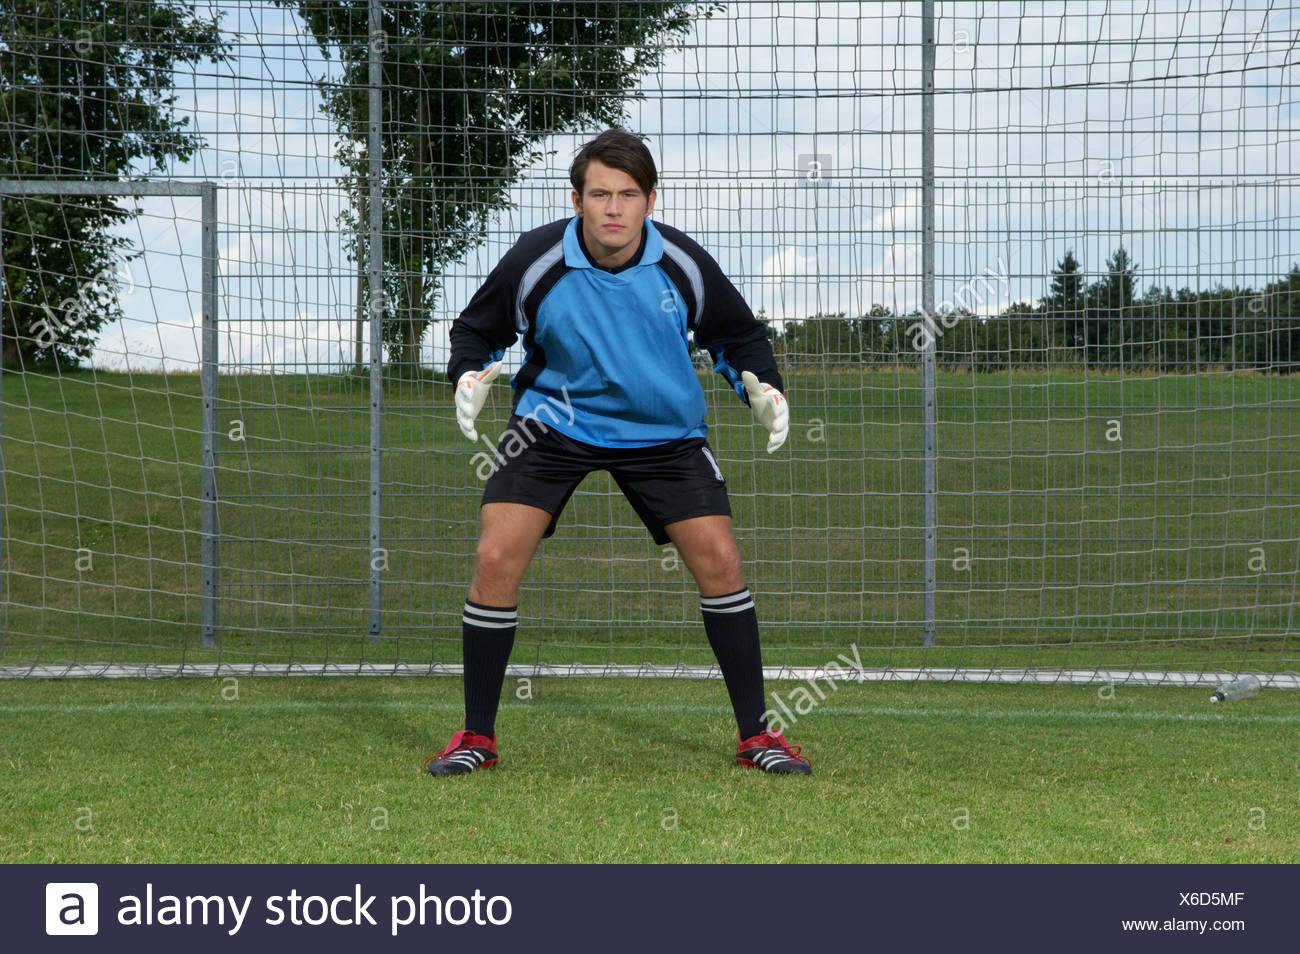 Goalkeeper standing in goal - Stock Image